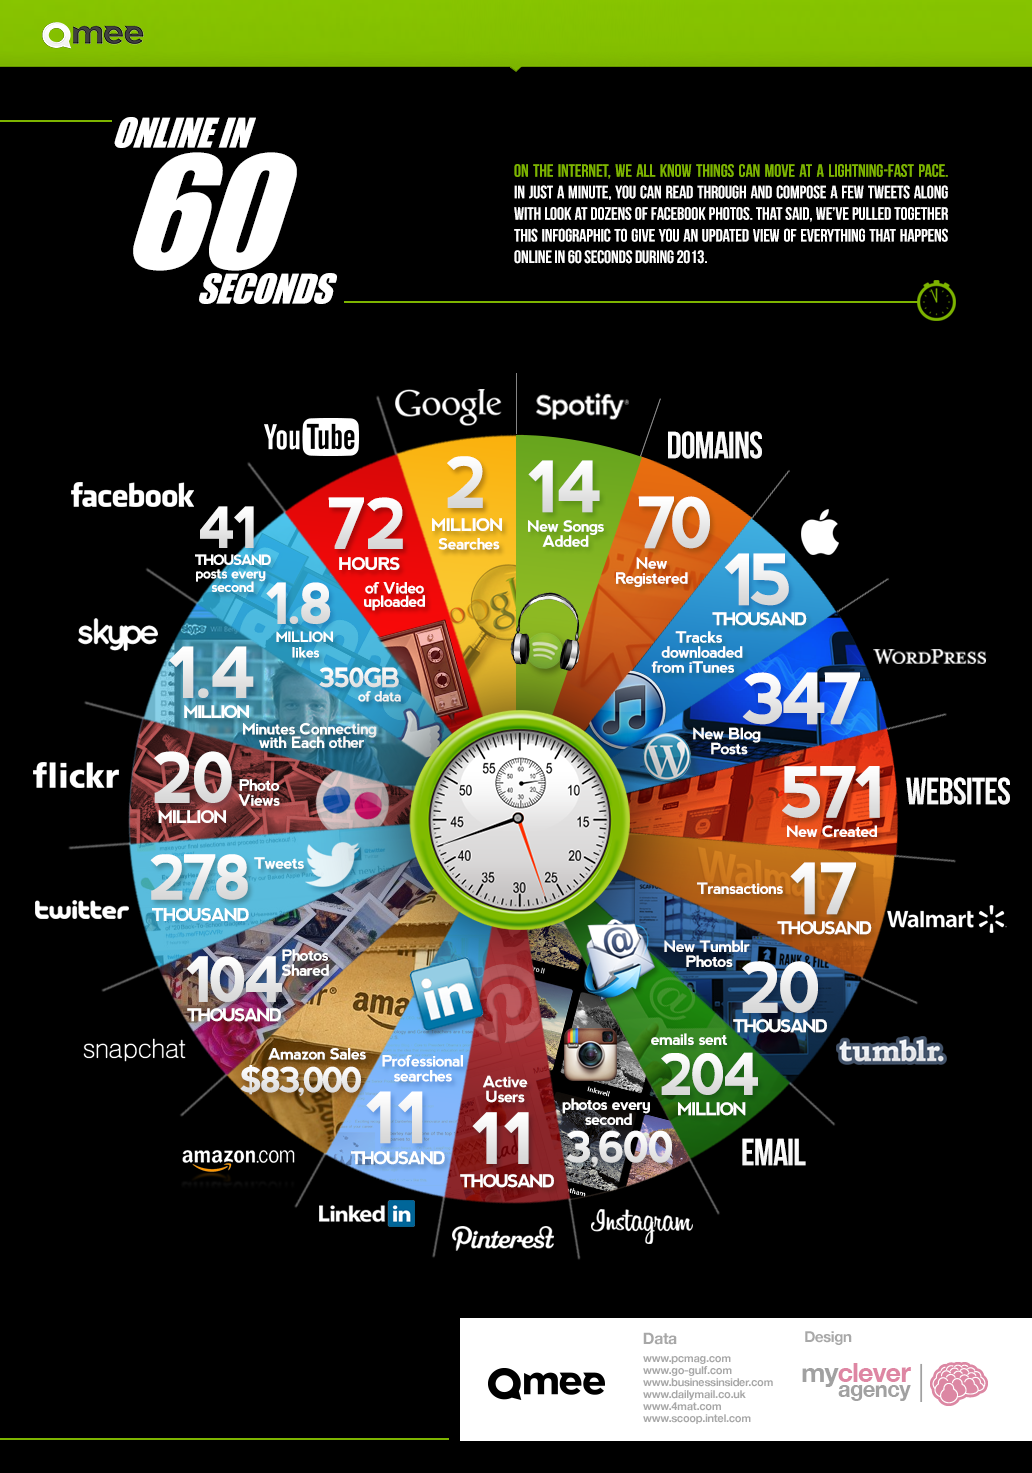 What Happens Online Every 60 Seconds